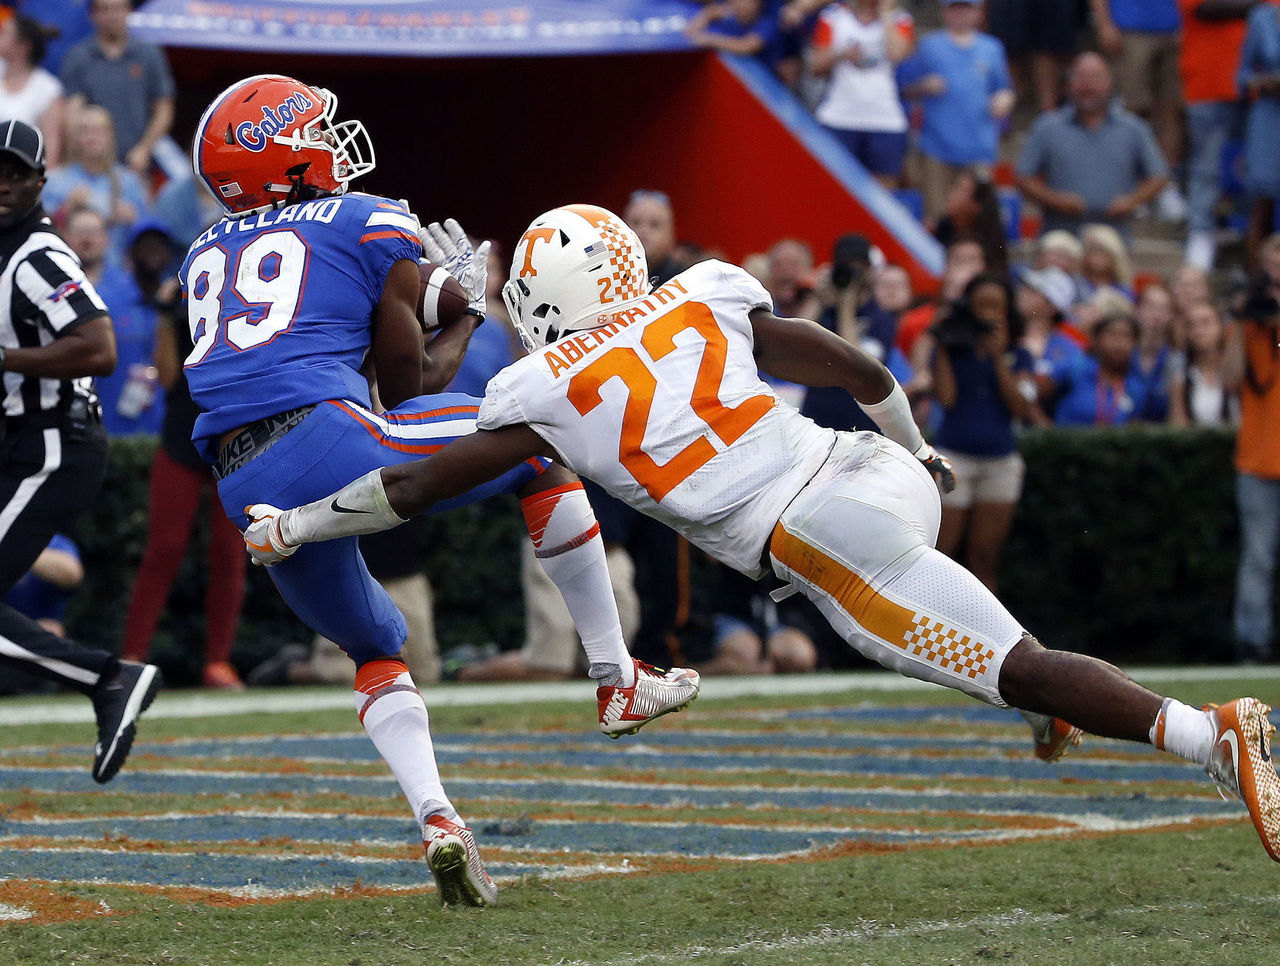 Cropped_2017-09-16t232738z_295881191_nocid_rtrmadp_3_ncaa-football-tennessee-at-florida